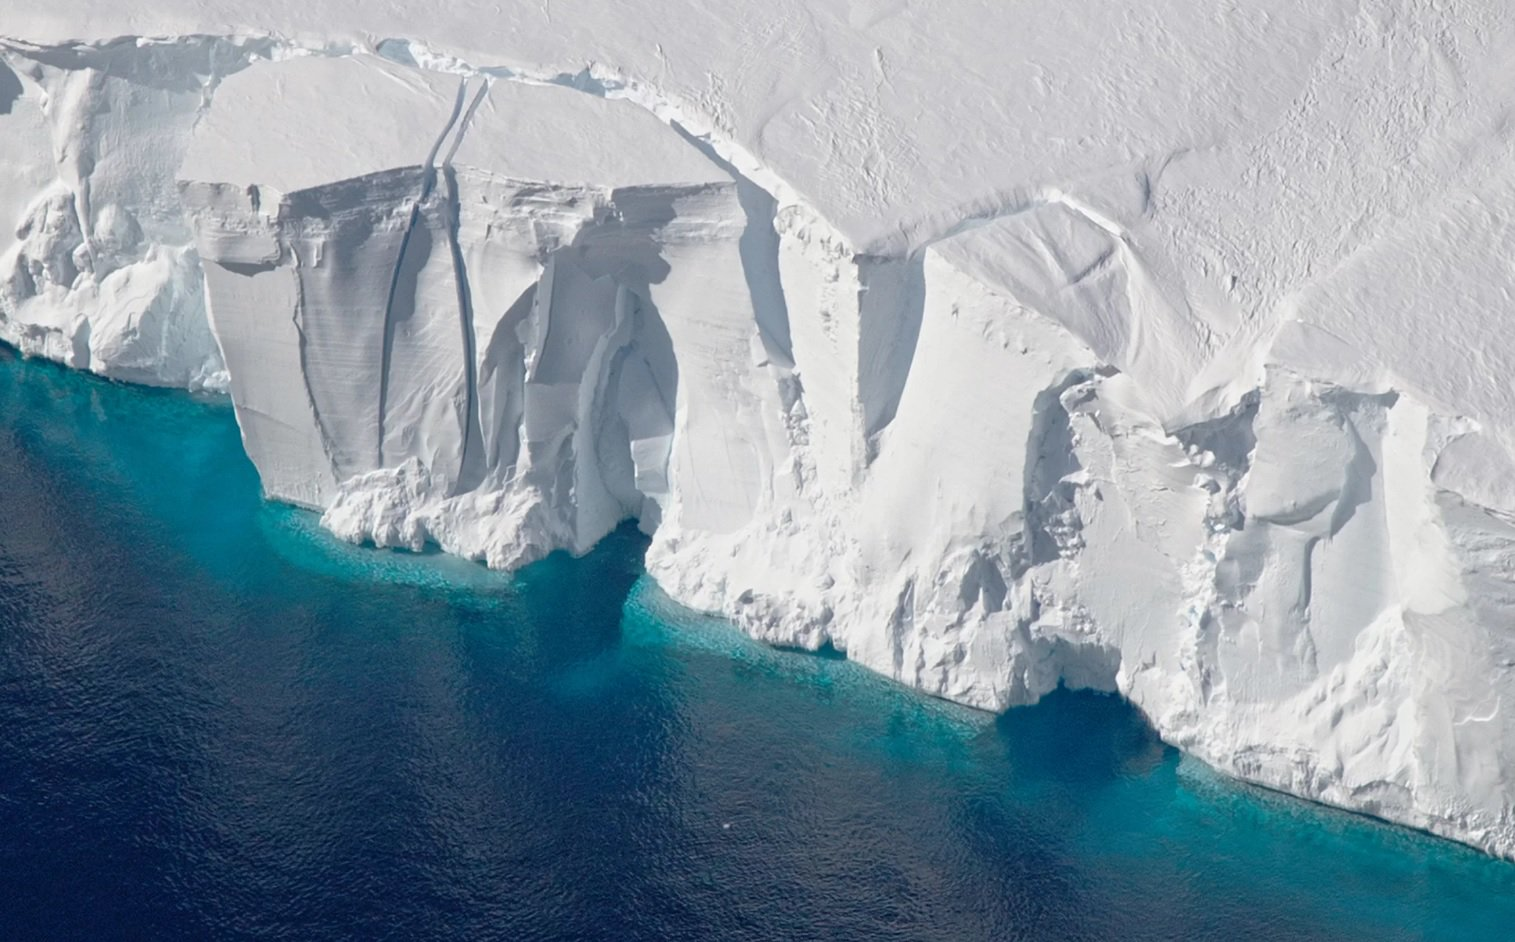 Reserves of ice in Antarctica over the past 25 years has declined significantly